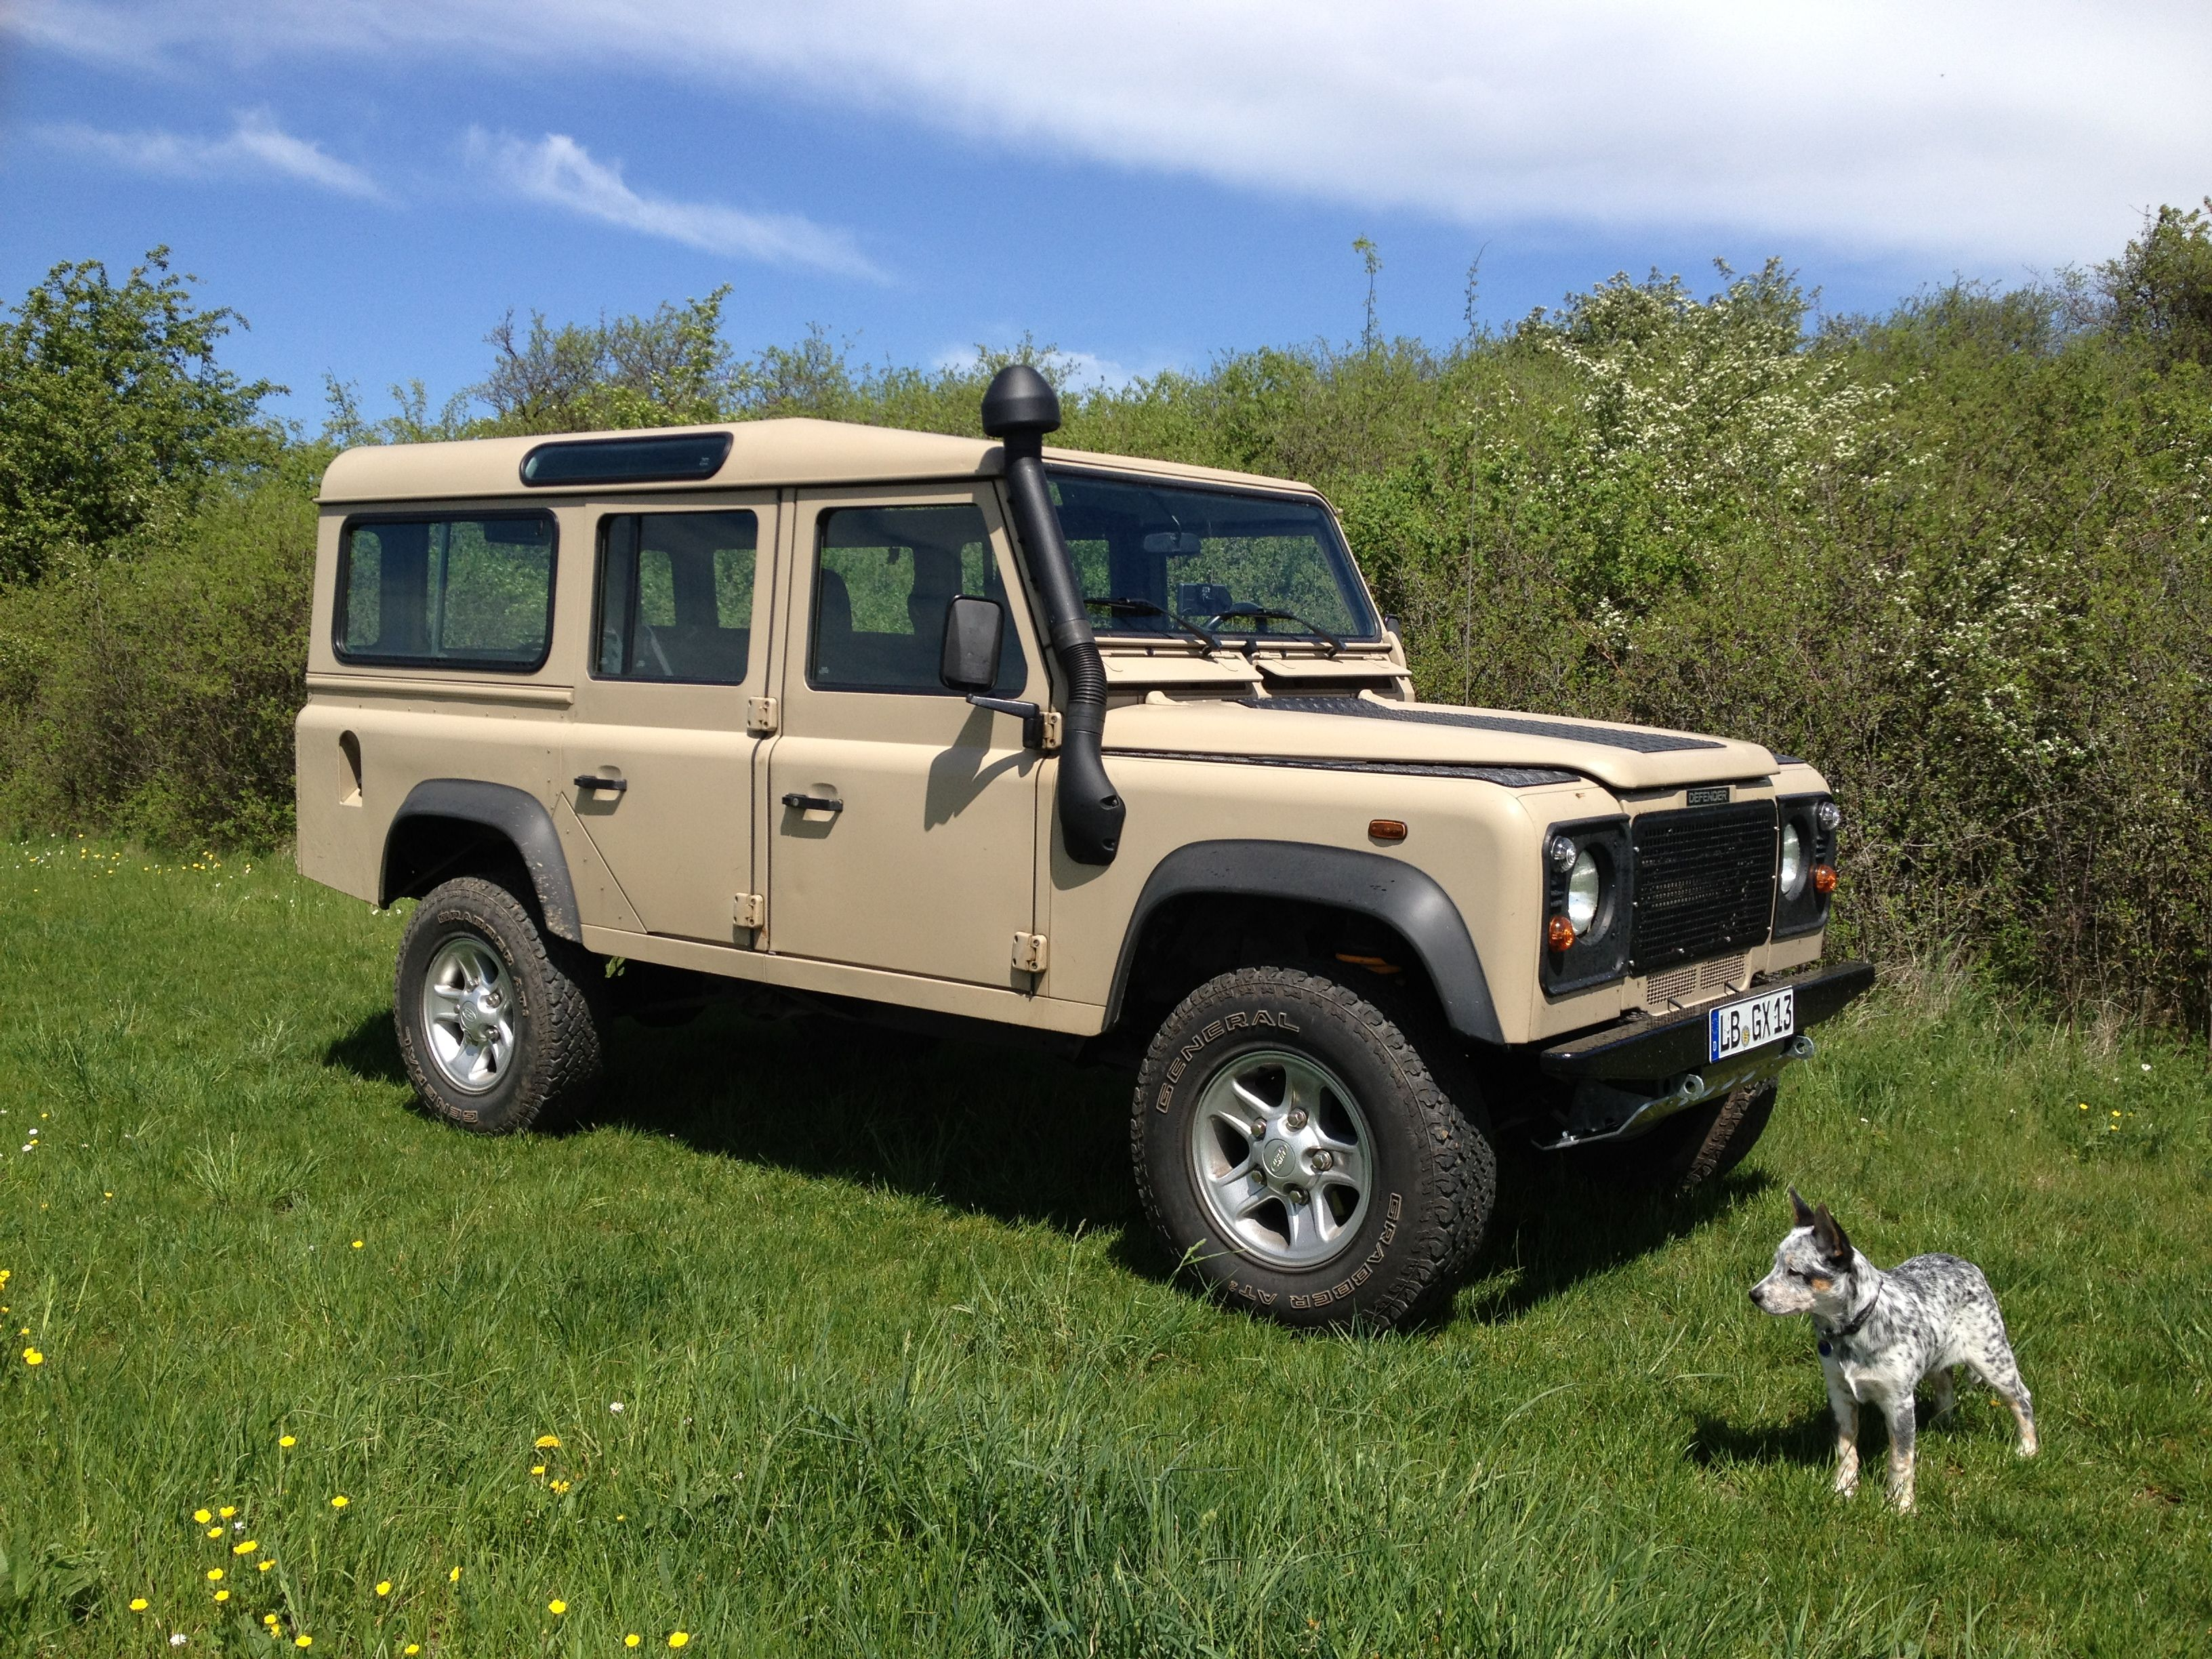 landrover parts defender equipment expedition pin google online search land rover